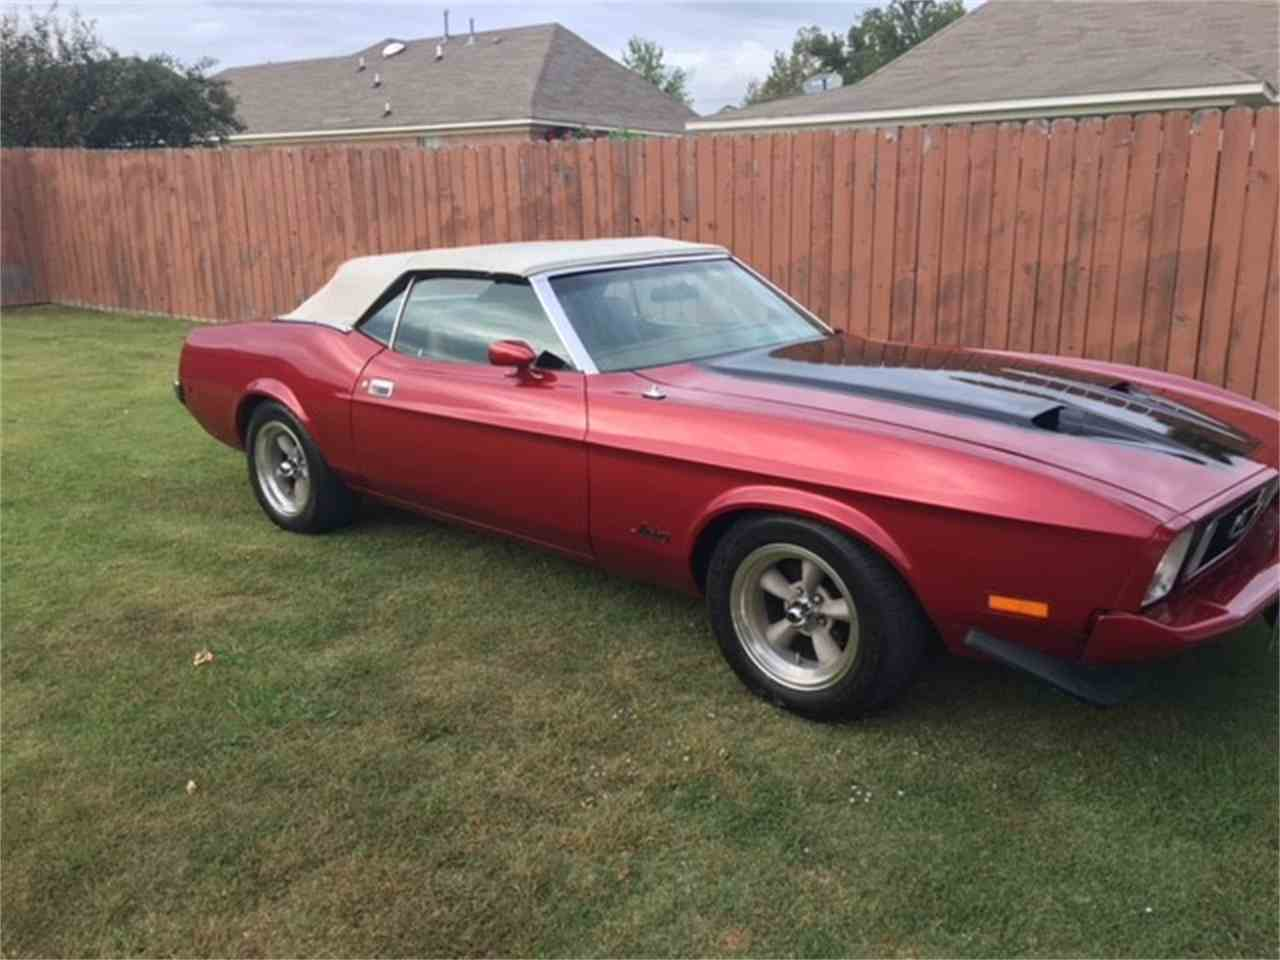 Large Picture of Classic 1973 Ford Mustang (Roush) - $18,000.00 - LRQU